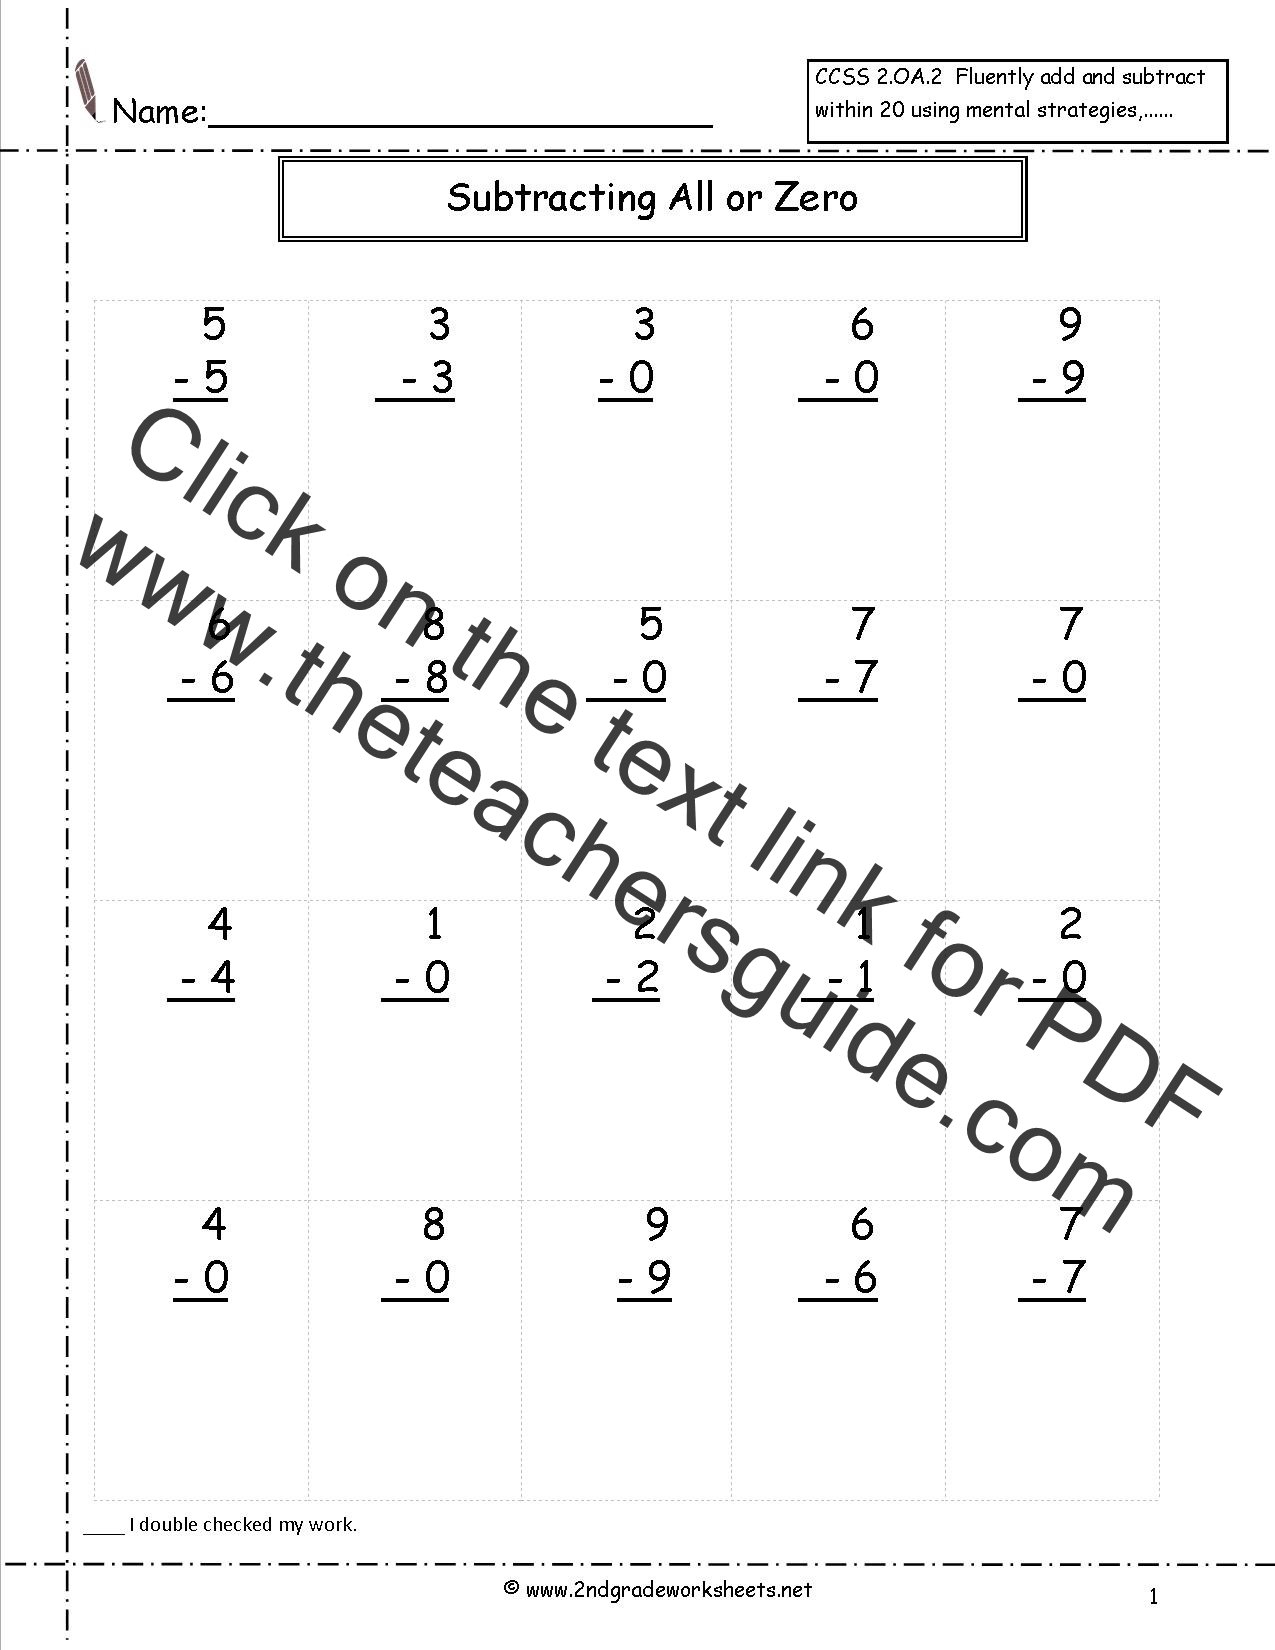 Fluently Add And Subtract Within 20 Using Mental